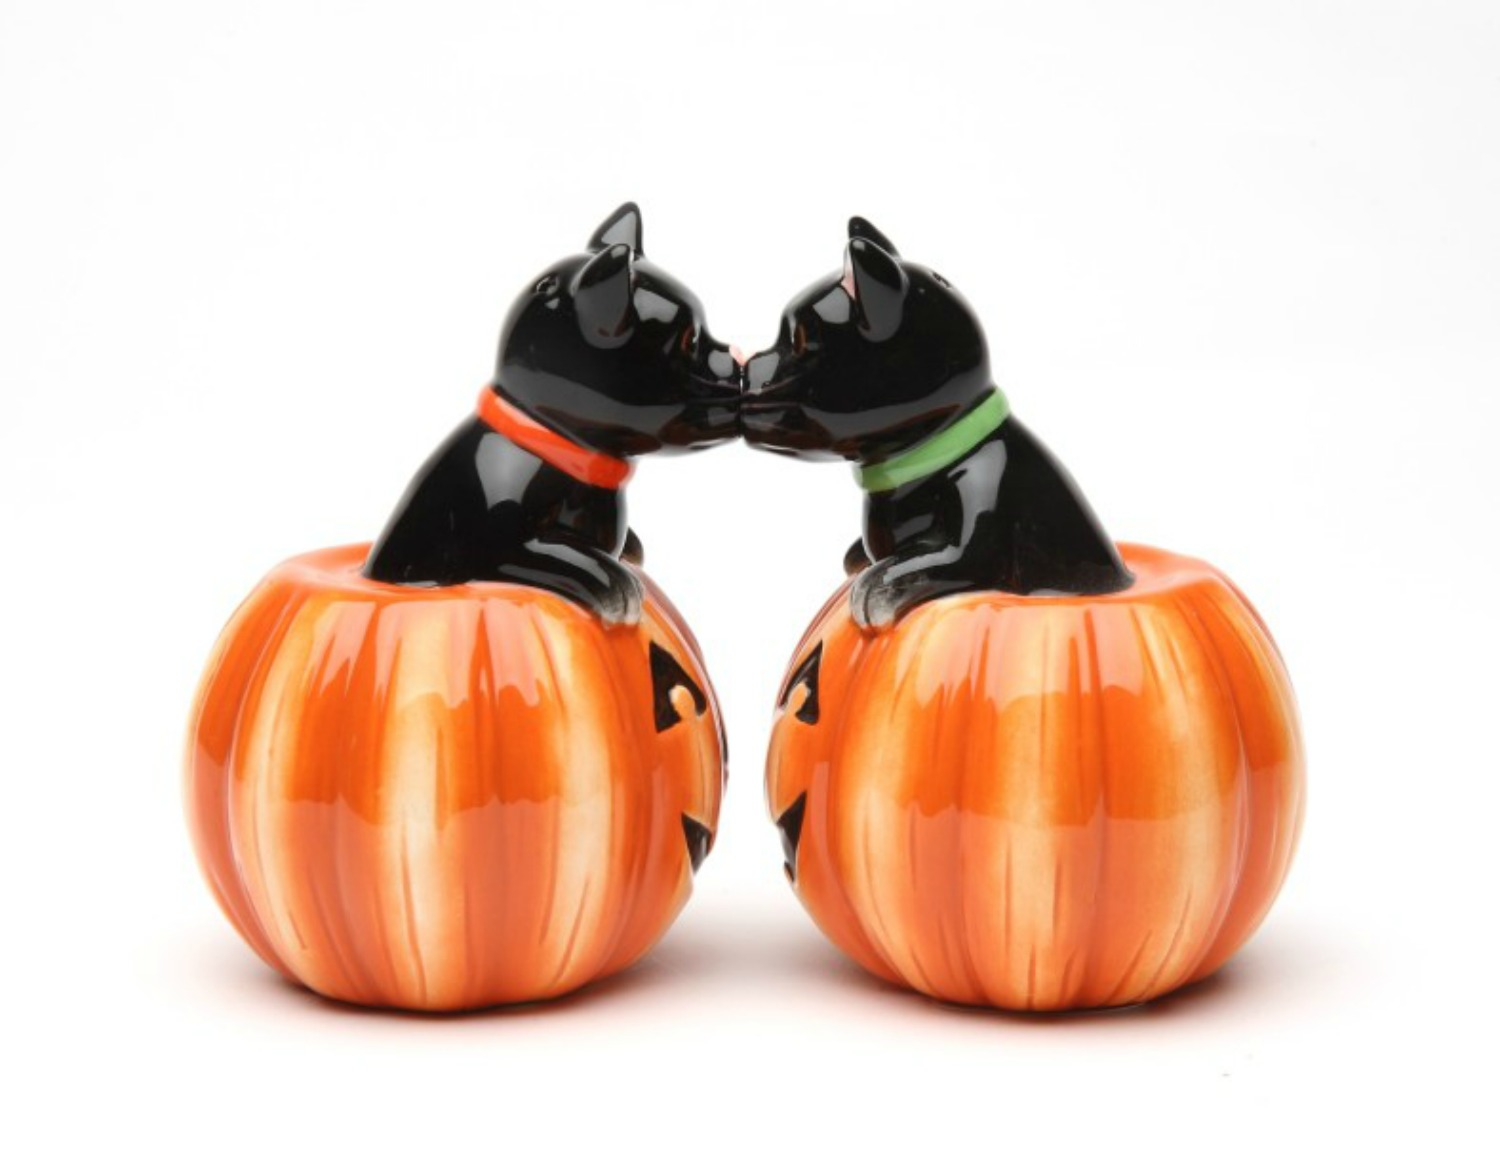 Black Cat and Halloween Pumpkins Salt and Pepper Shaker Set by Pacific Trading